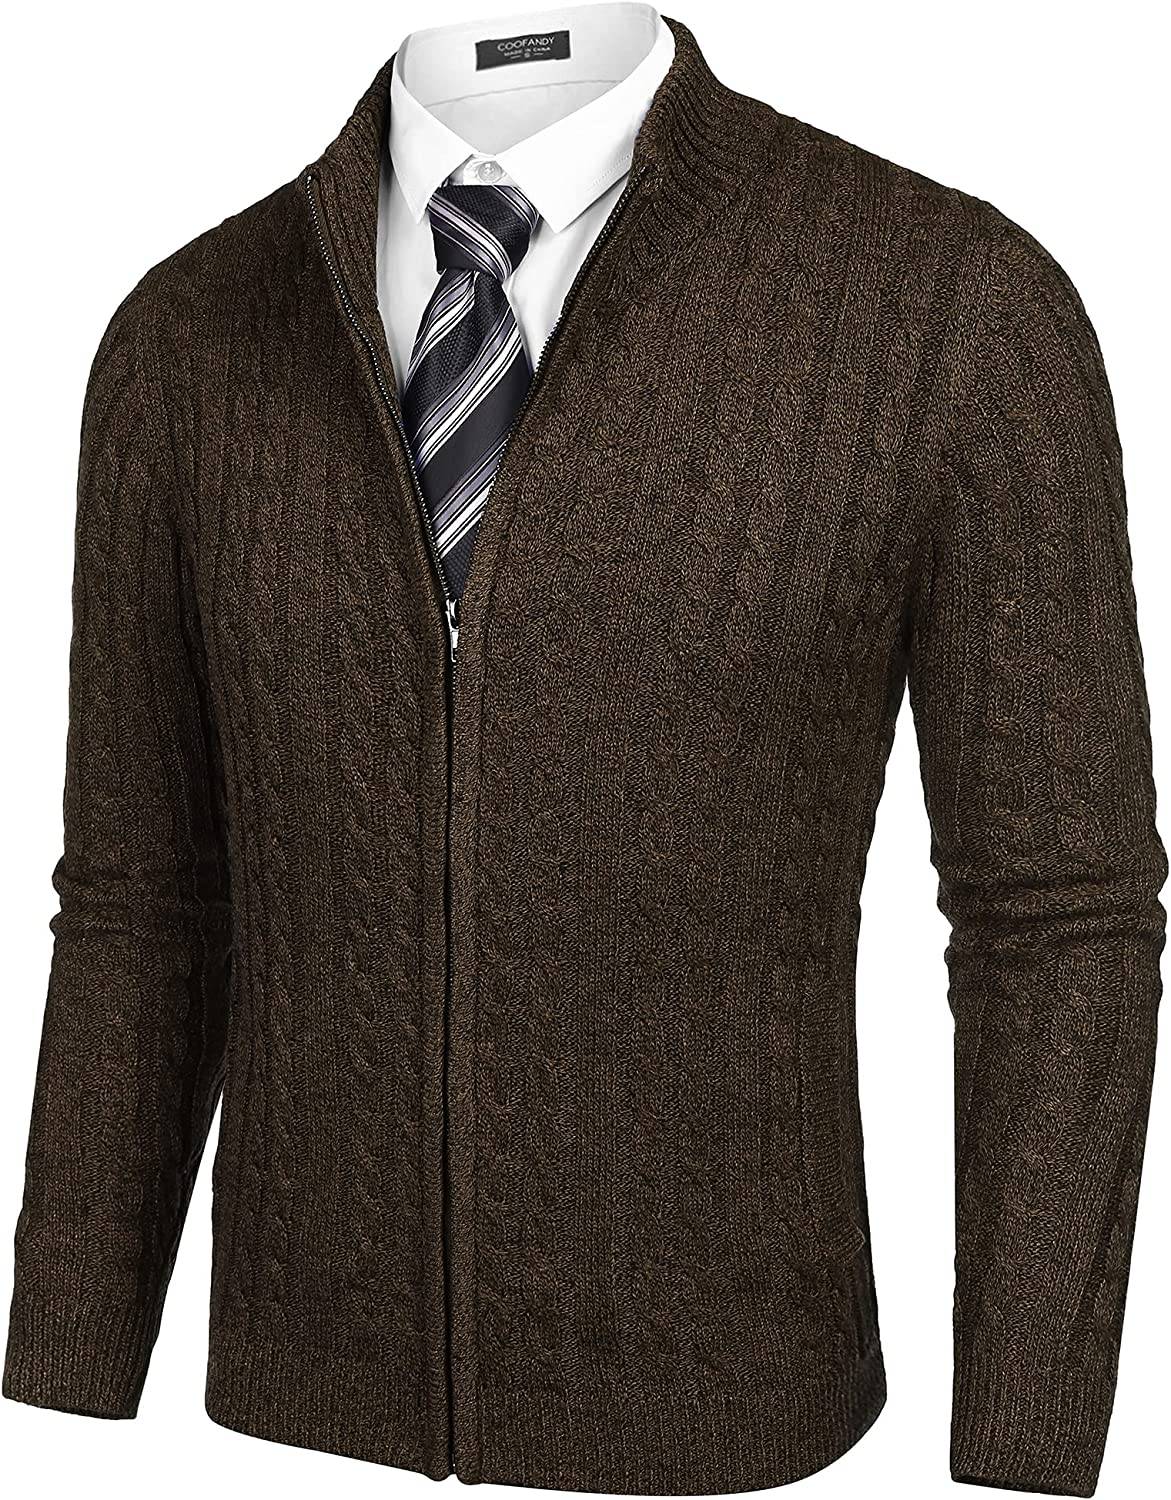 COOFANDY Men's Full Zip Cardigan Sweater Slim Fit Cable Knitted Zip Up Sweater with Pockets